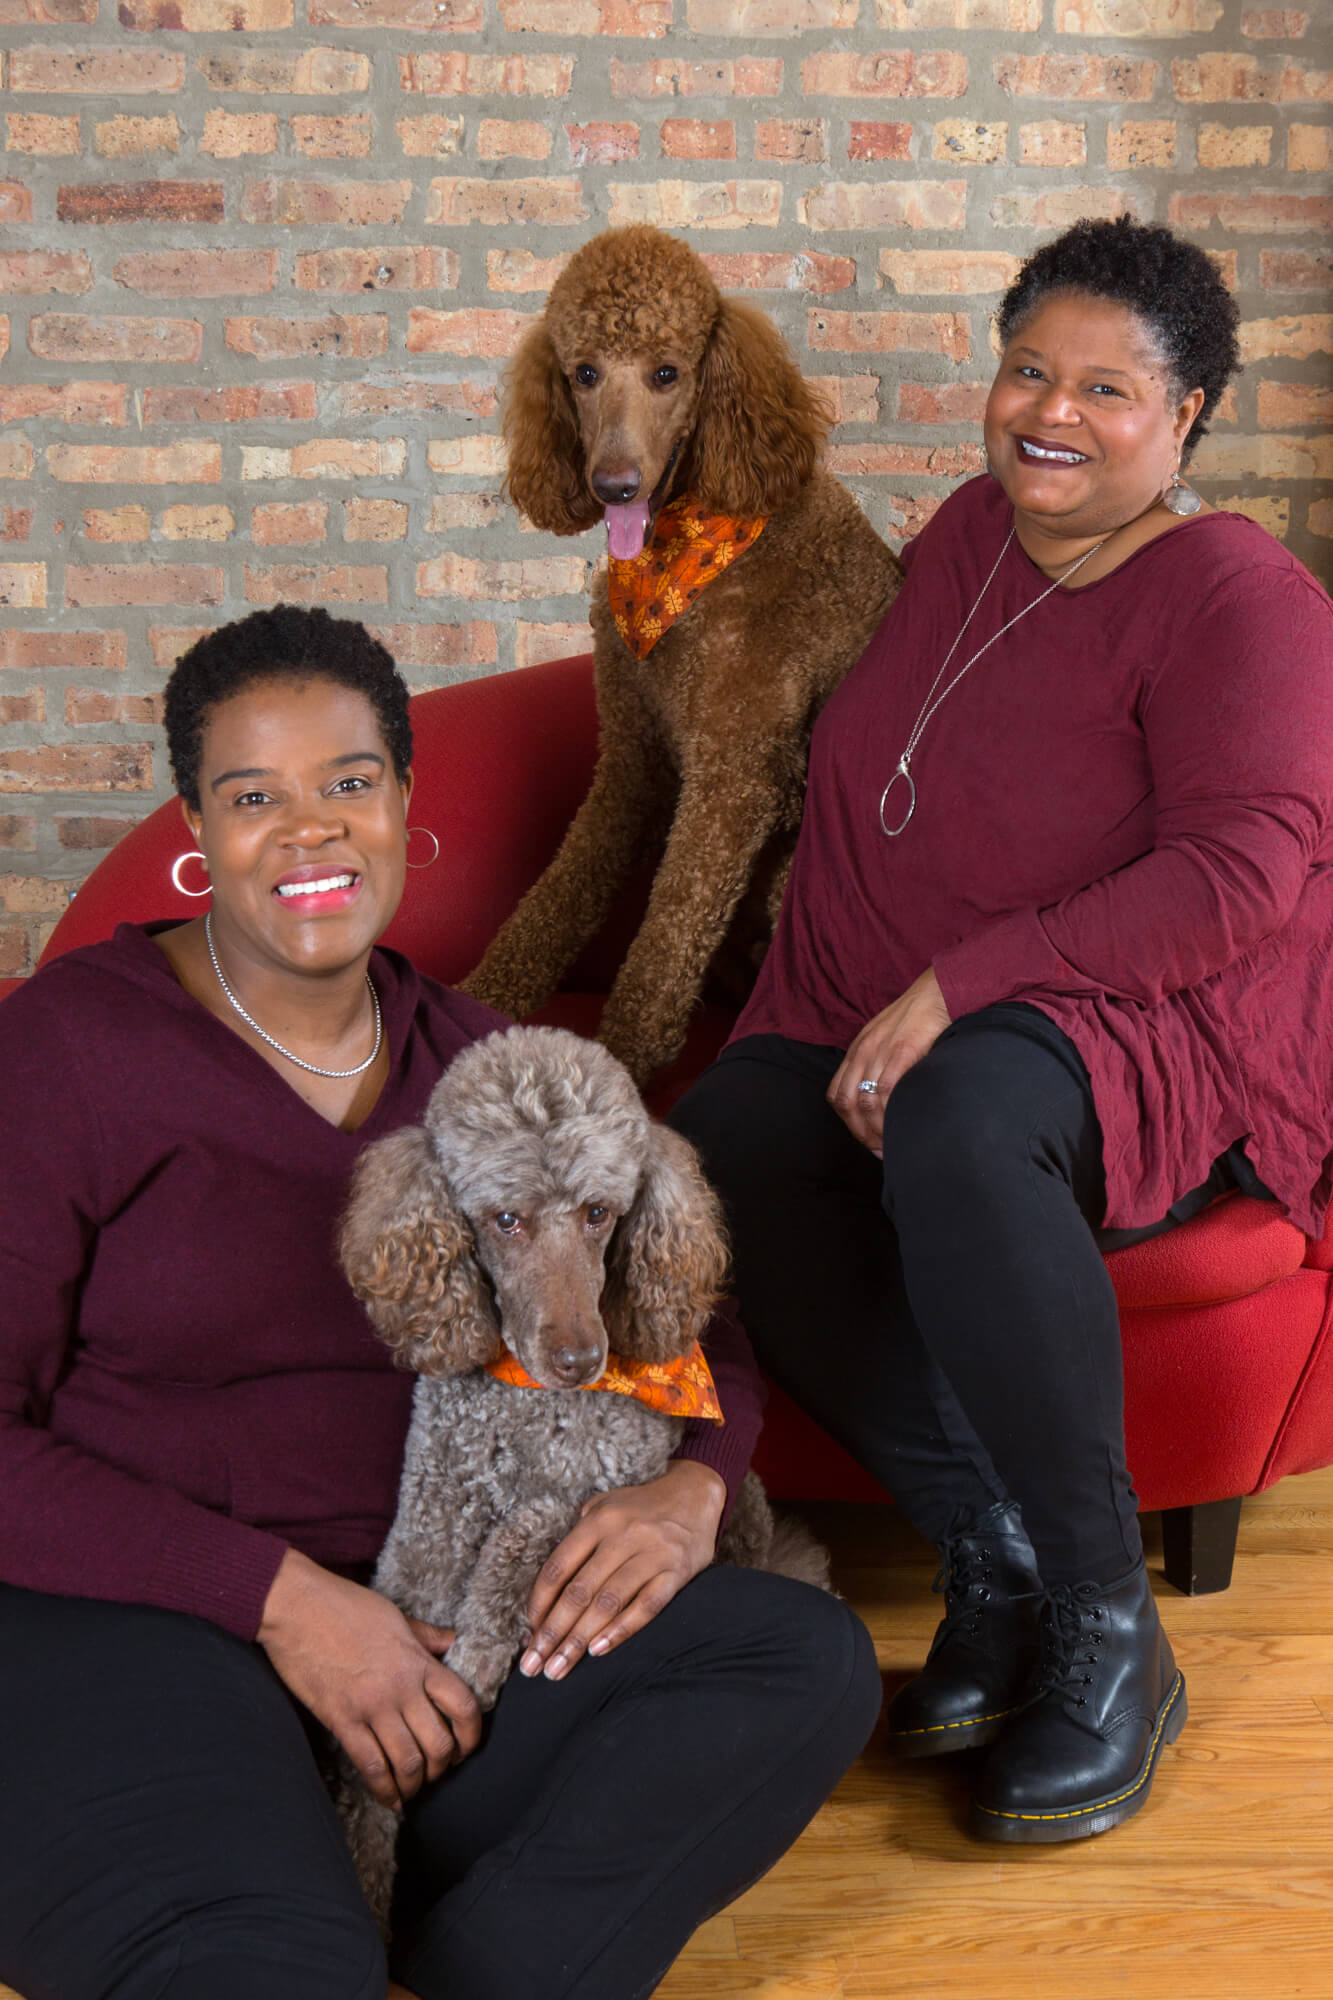 Family Portrait of two women with dogs